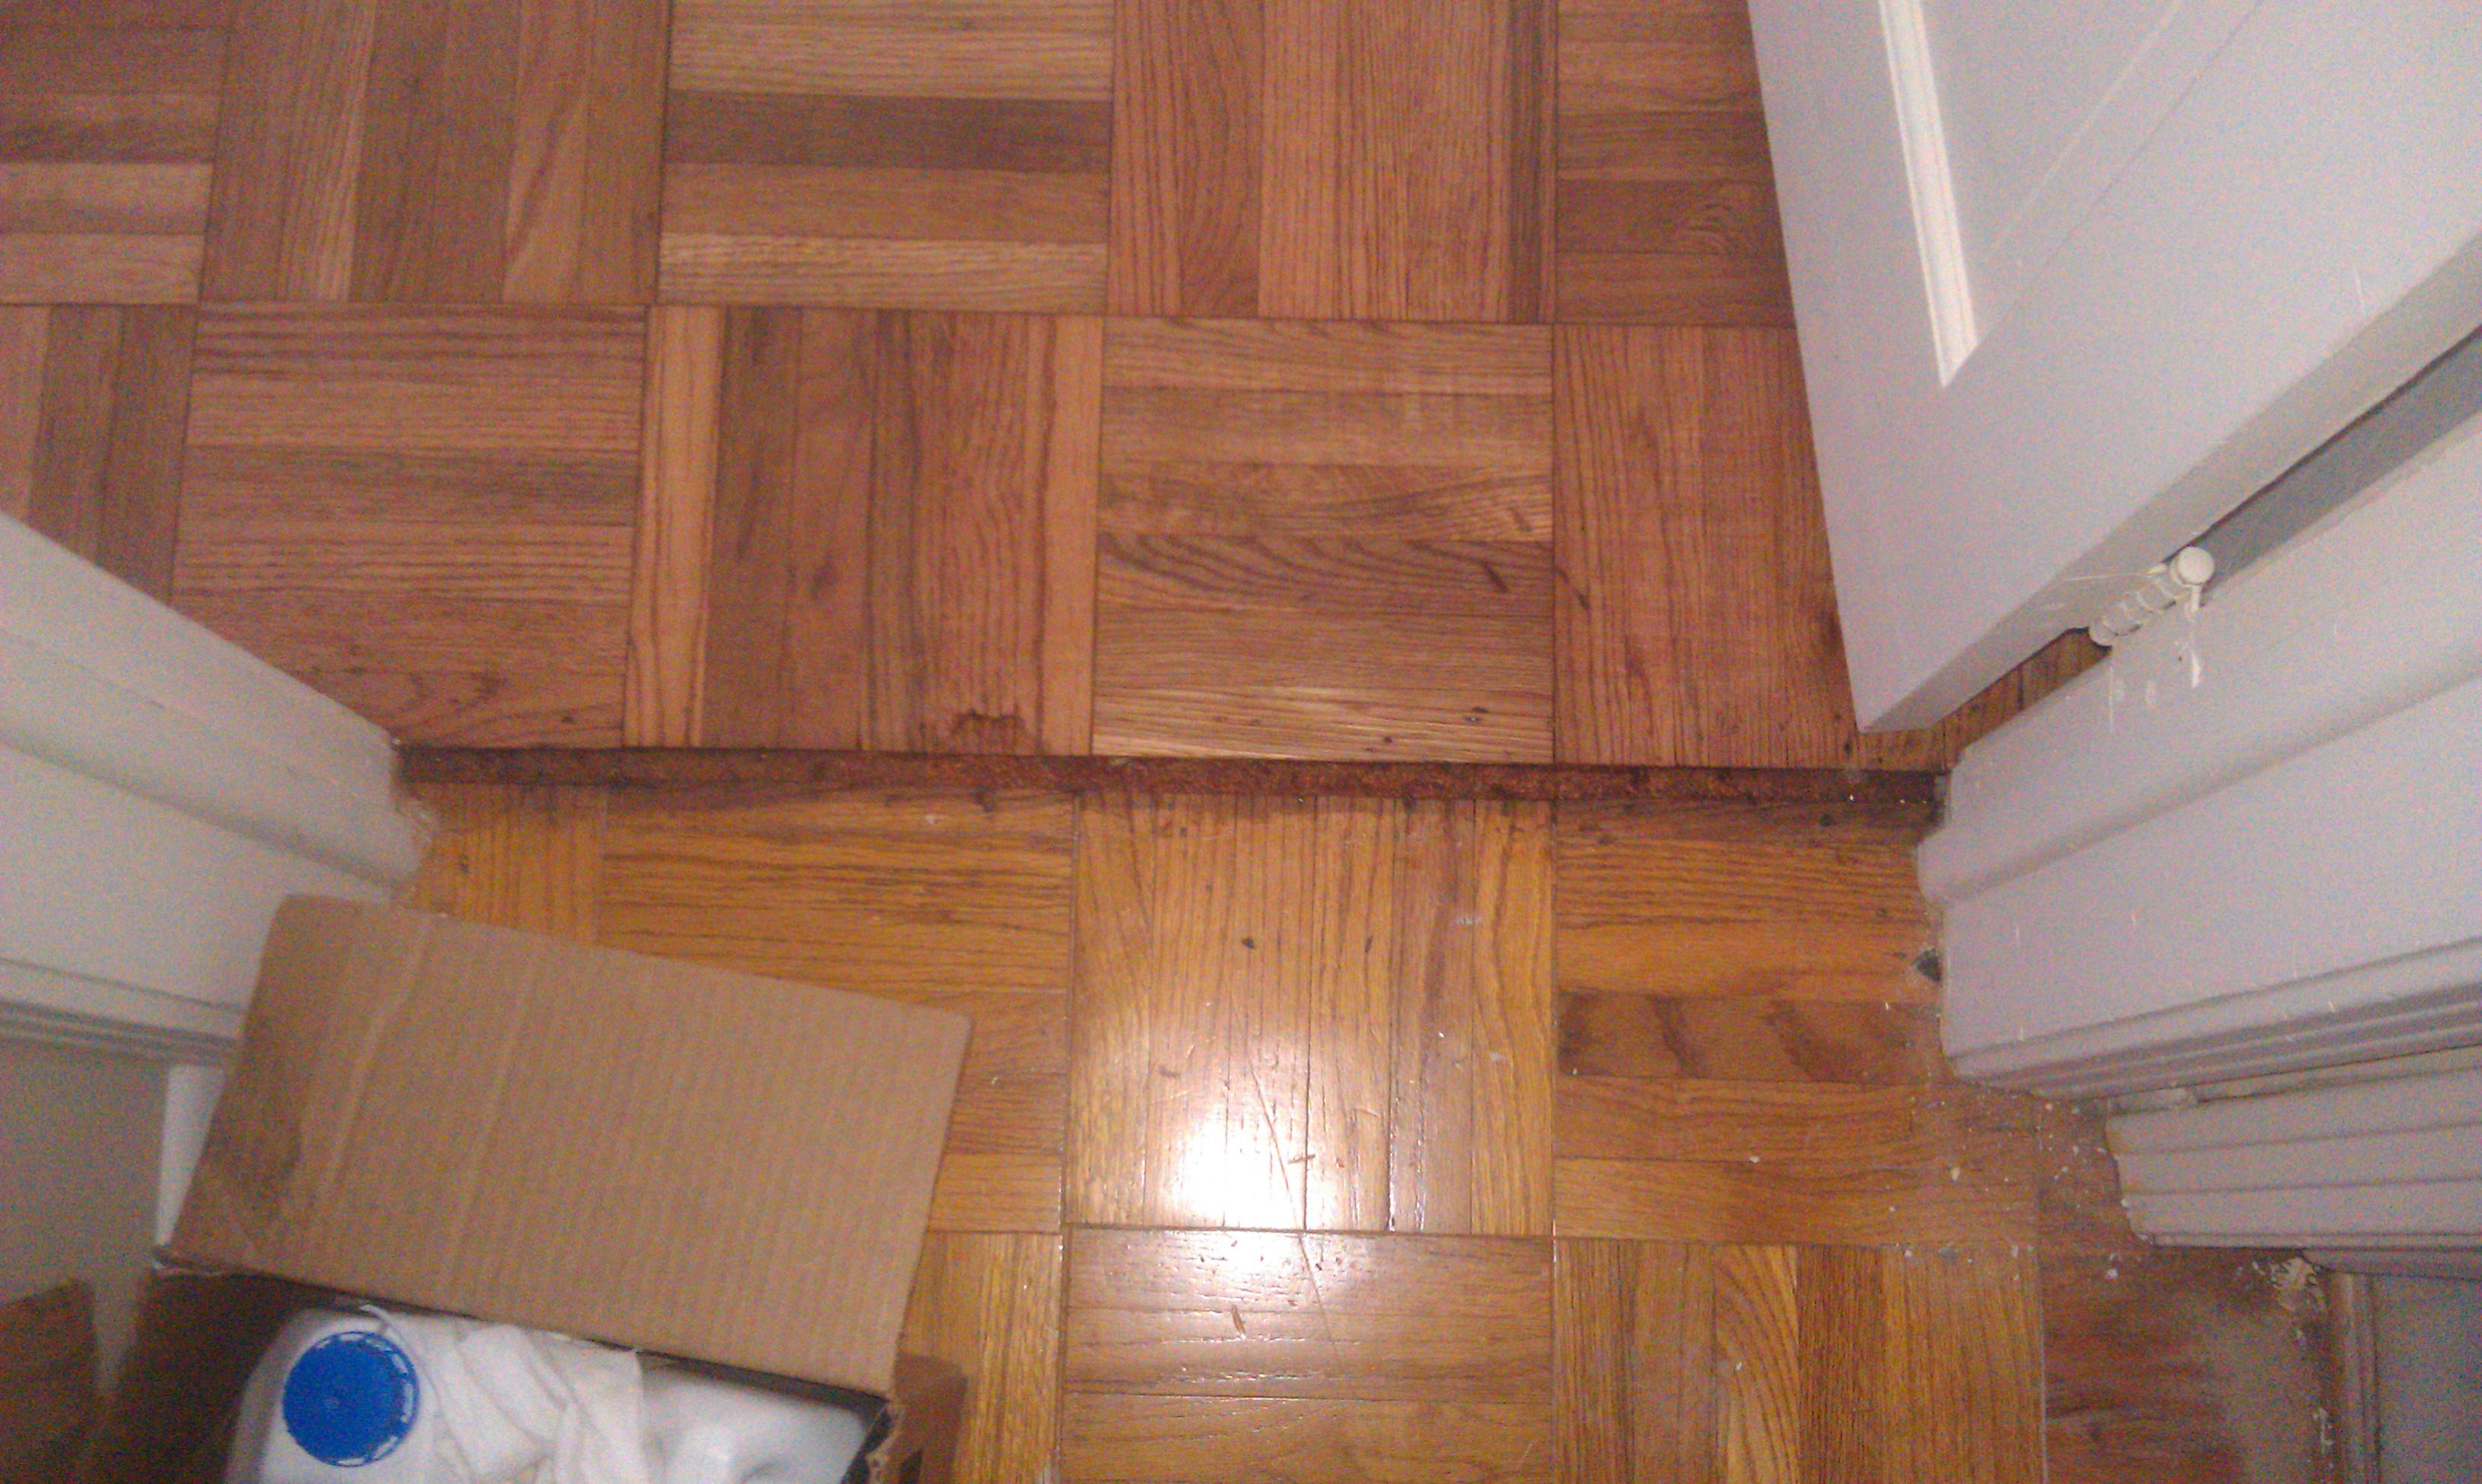 Wood flooring contractor in jacksonville for Hardwood floors jacksonville fl